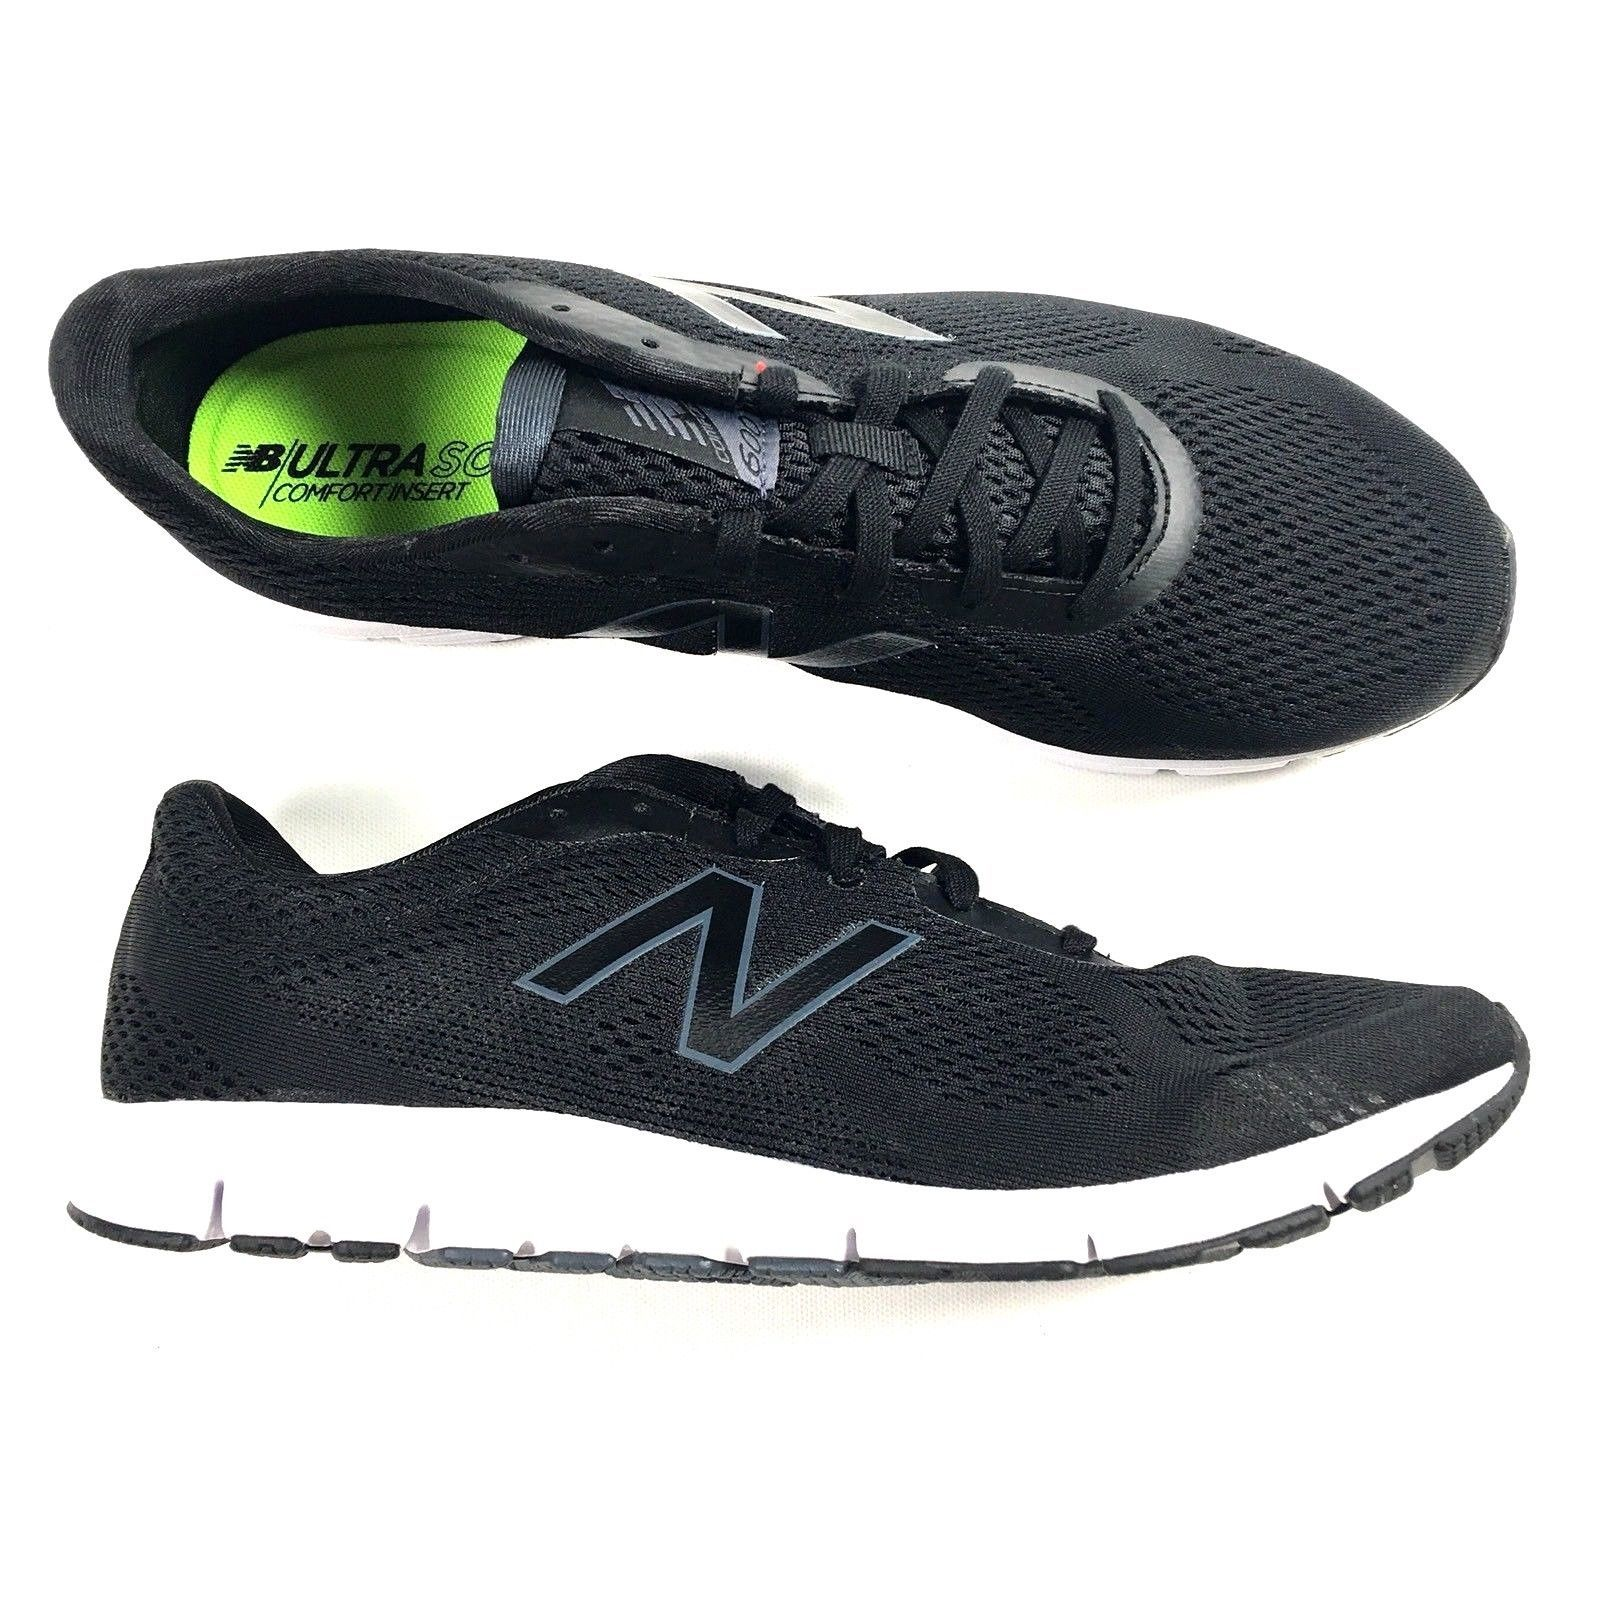 New Balance Running Shoes 600v2 Mens Size 9 Black W600EB2 Black - $55.74